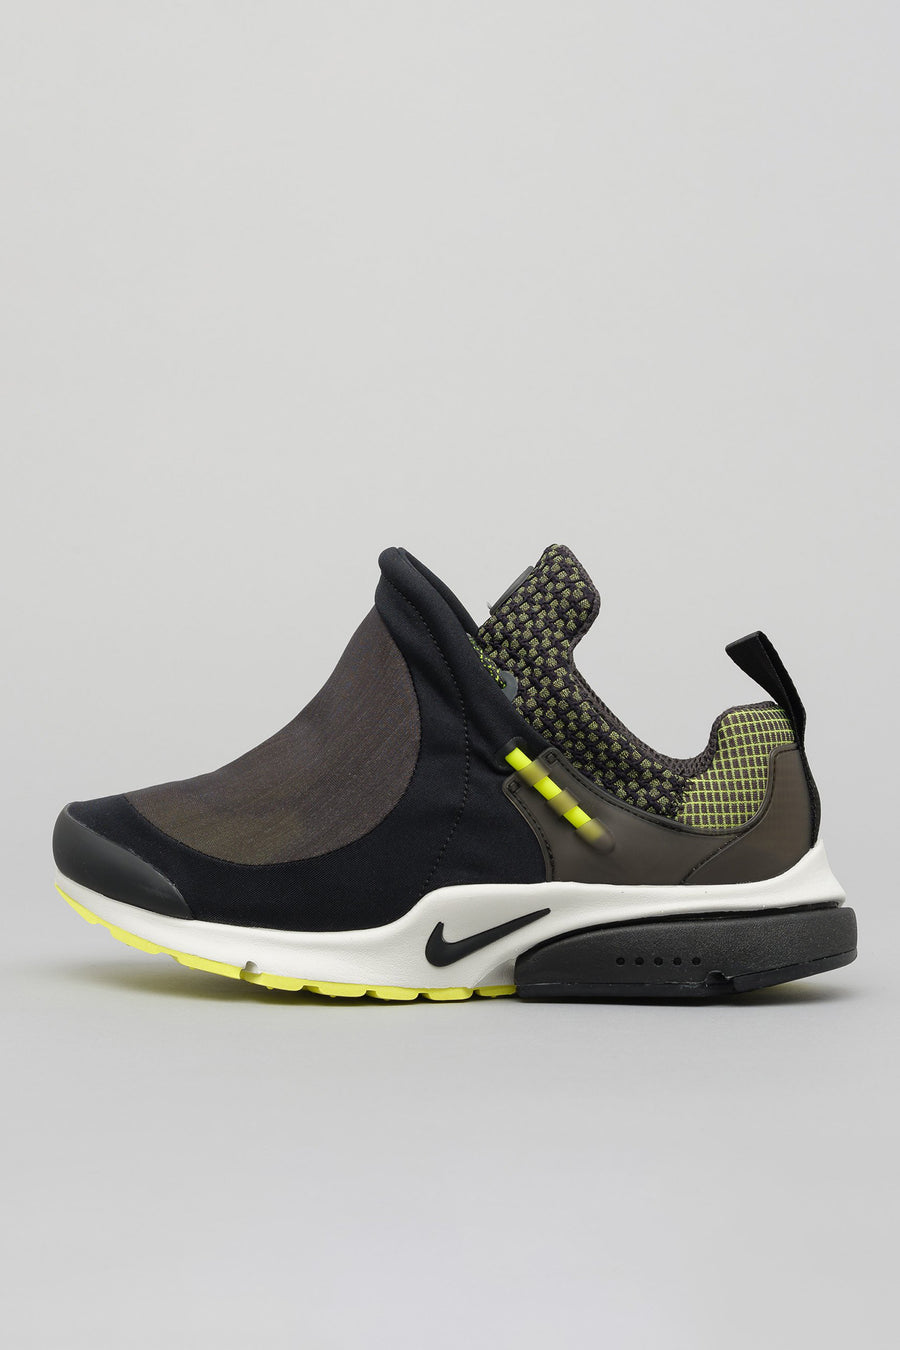 New York 6137a 77cce x Nike Presto Tent in Anthracite